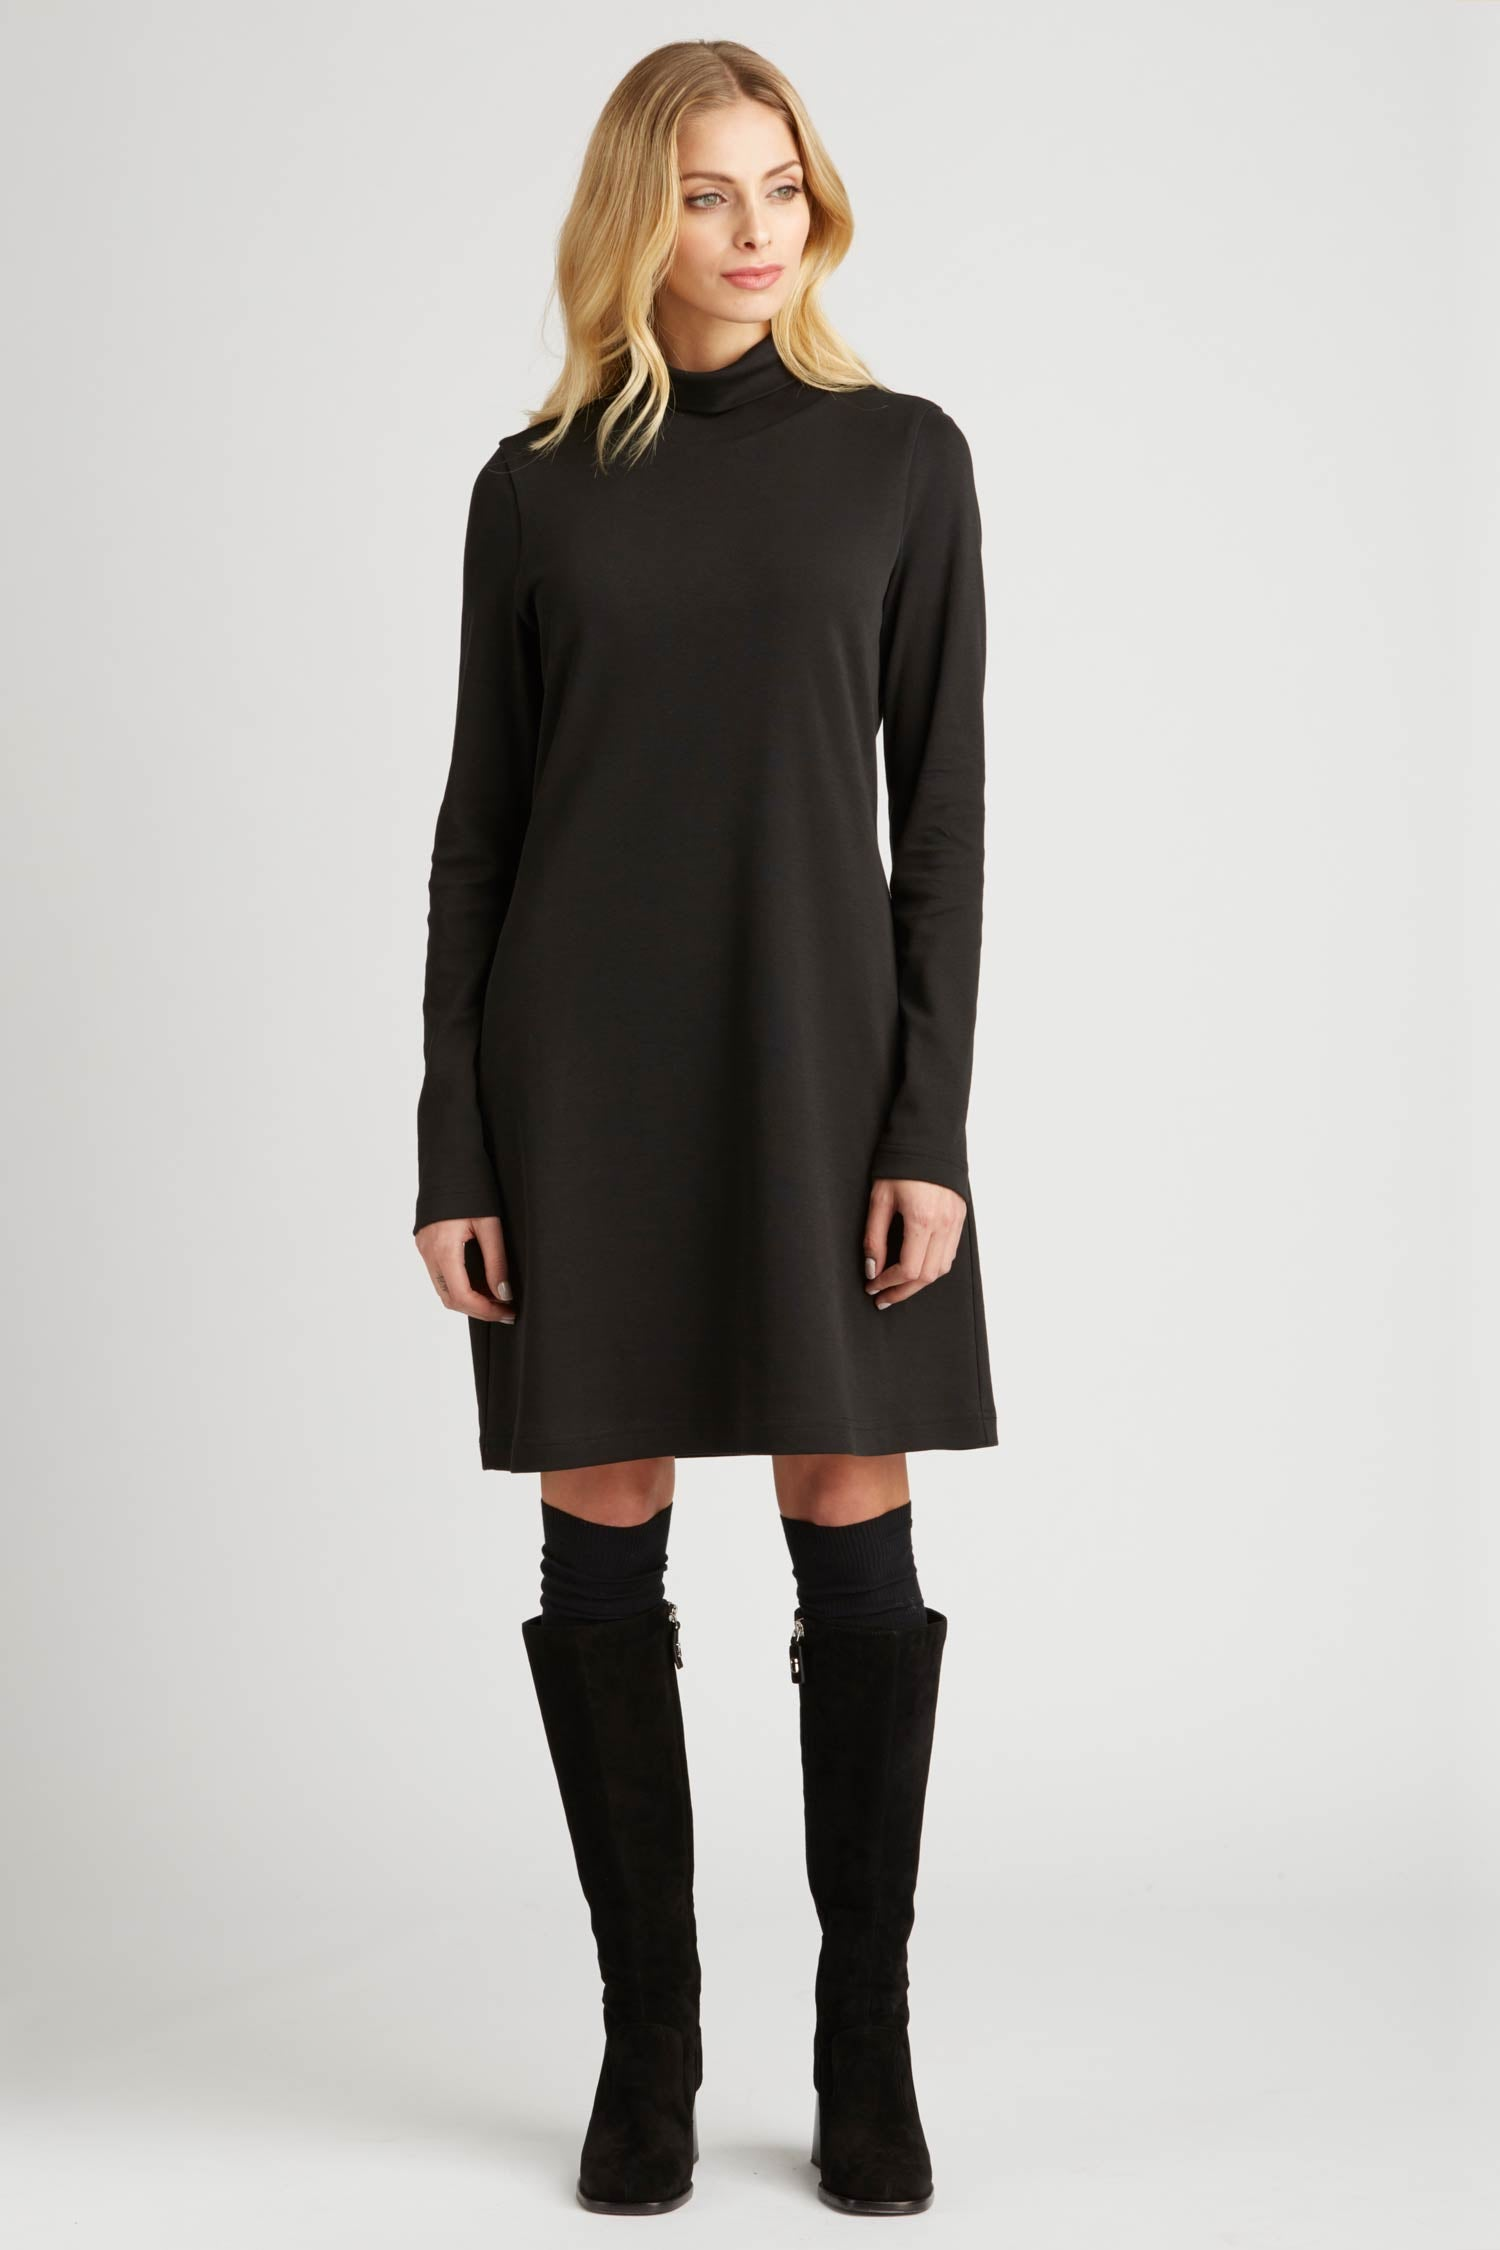 Womens Turtleneck Dress in Black | Organic Cotton Clothing